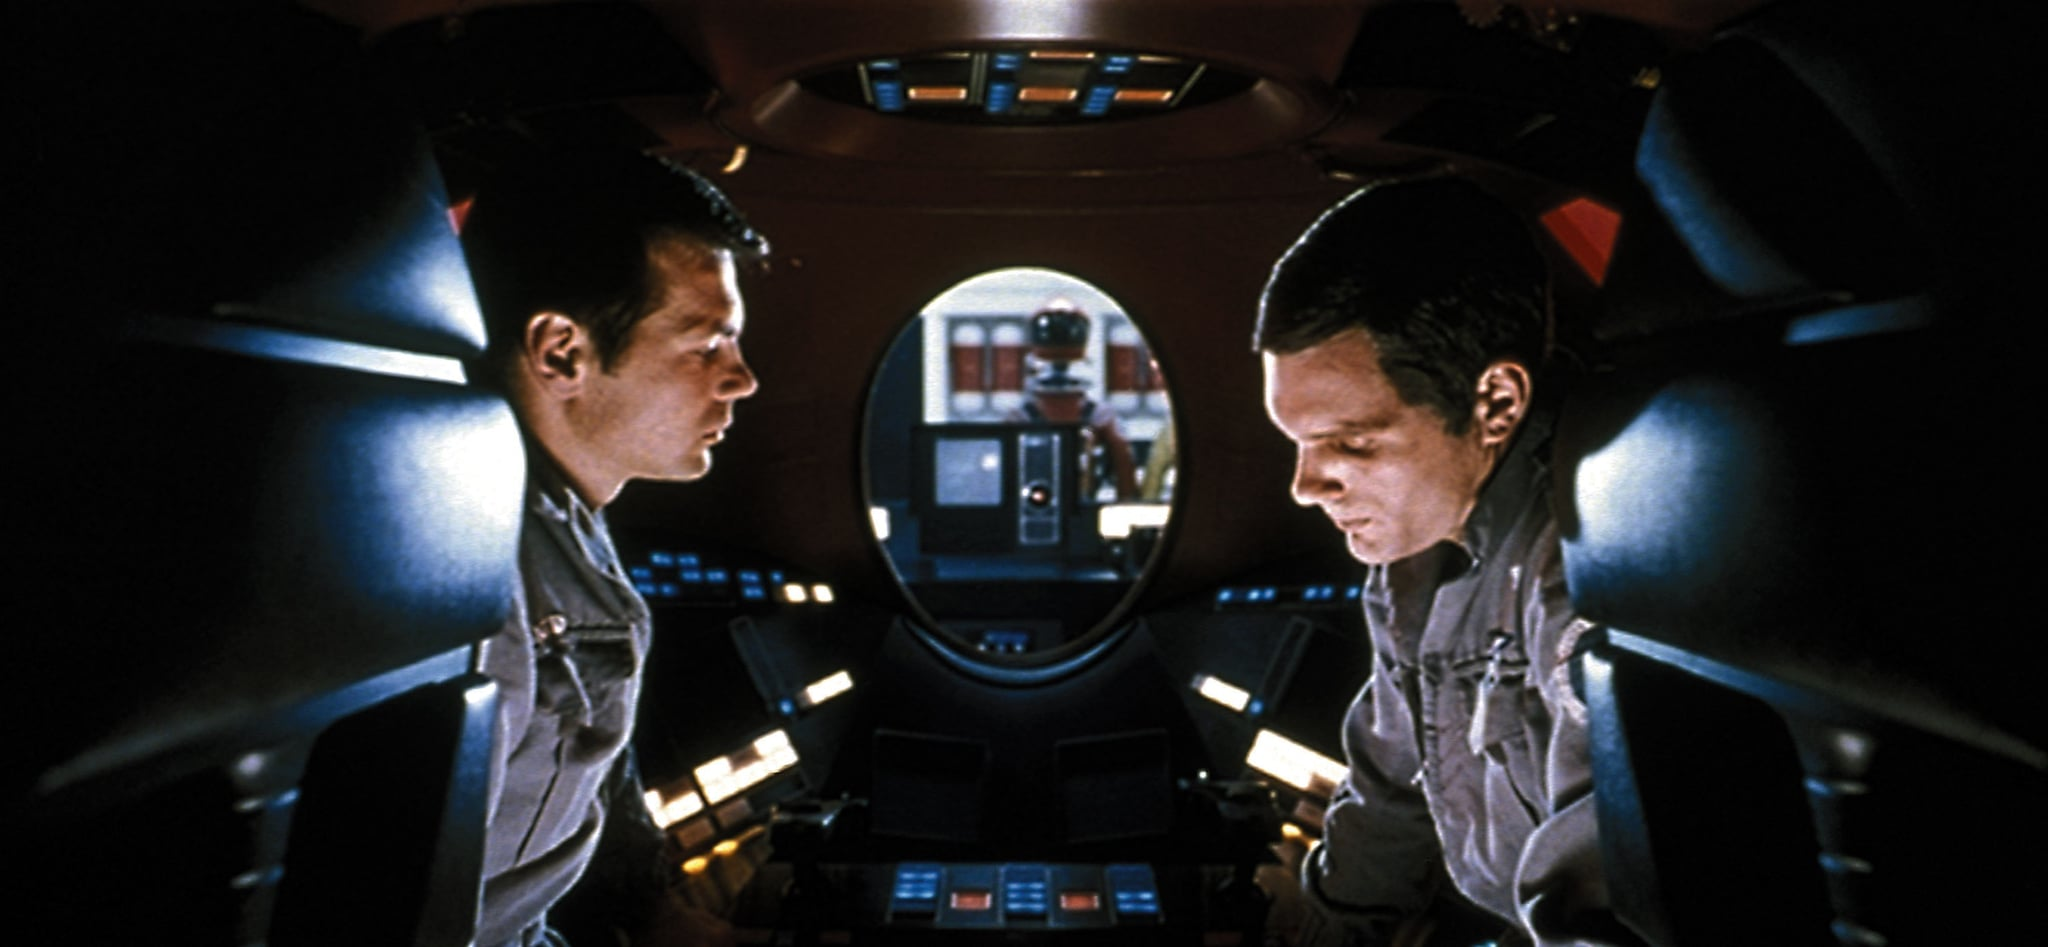 2001 A Space Odyssey 36 New Movies And Tv Shows On Netflix To